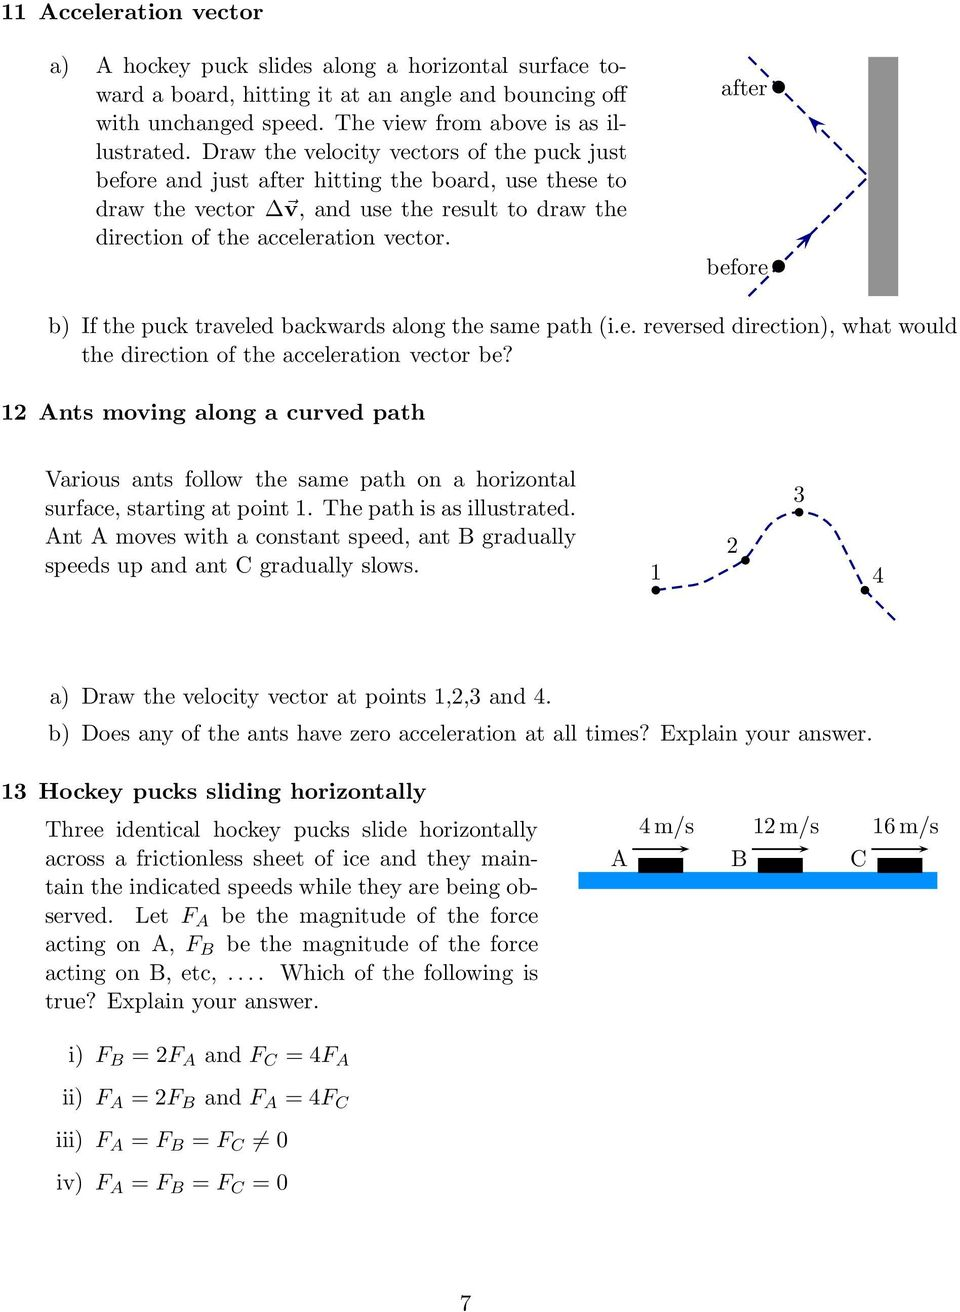 after before b) If the puck traveled backwards along the same path (i.e. reversed direction), what would the direction of the acceleration vector be?